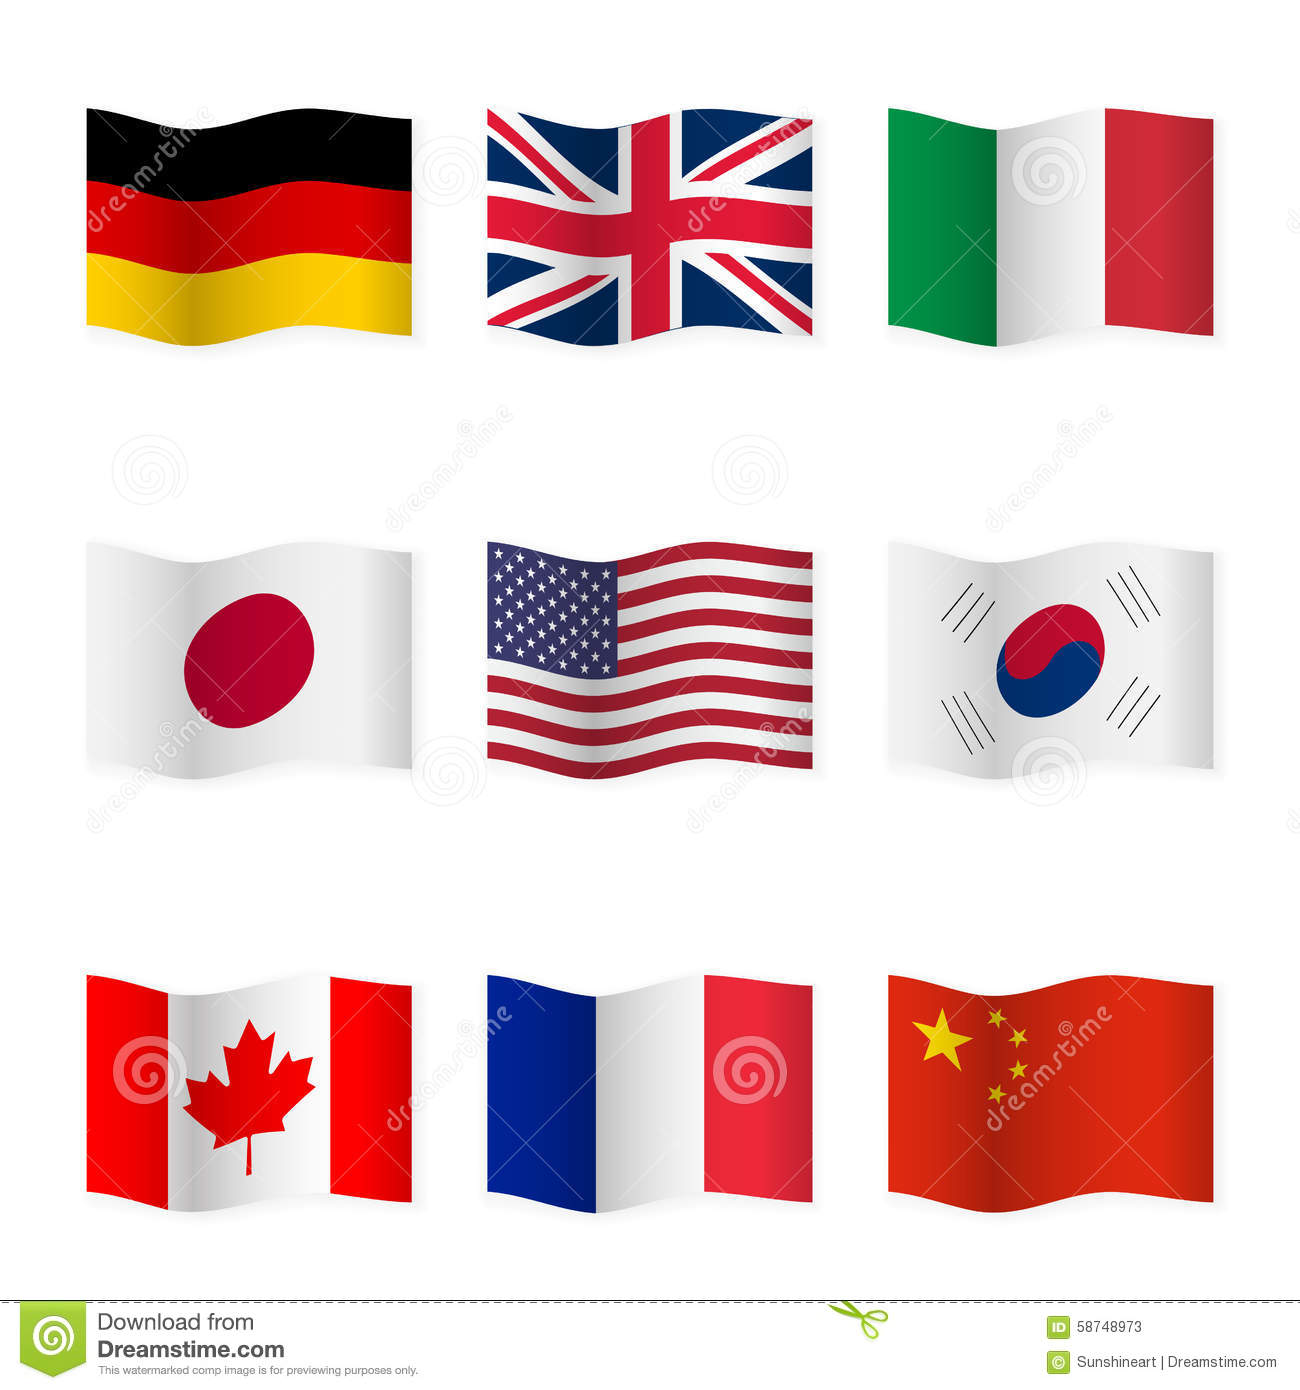 Waving flags of different countries. Flag icons on white background.